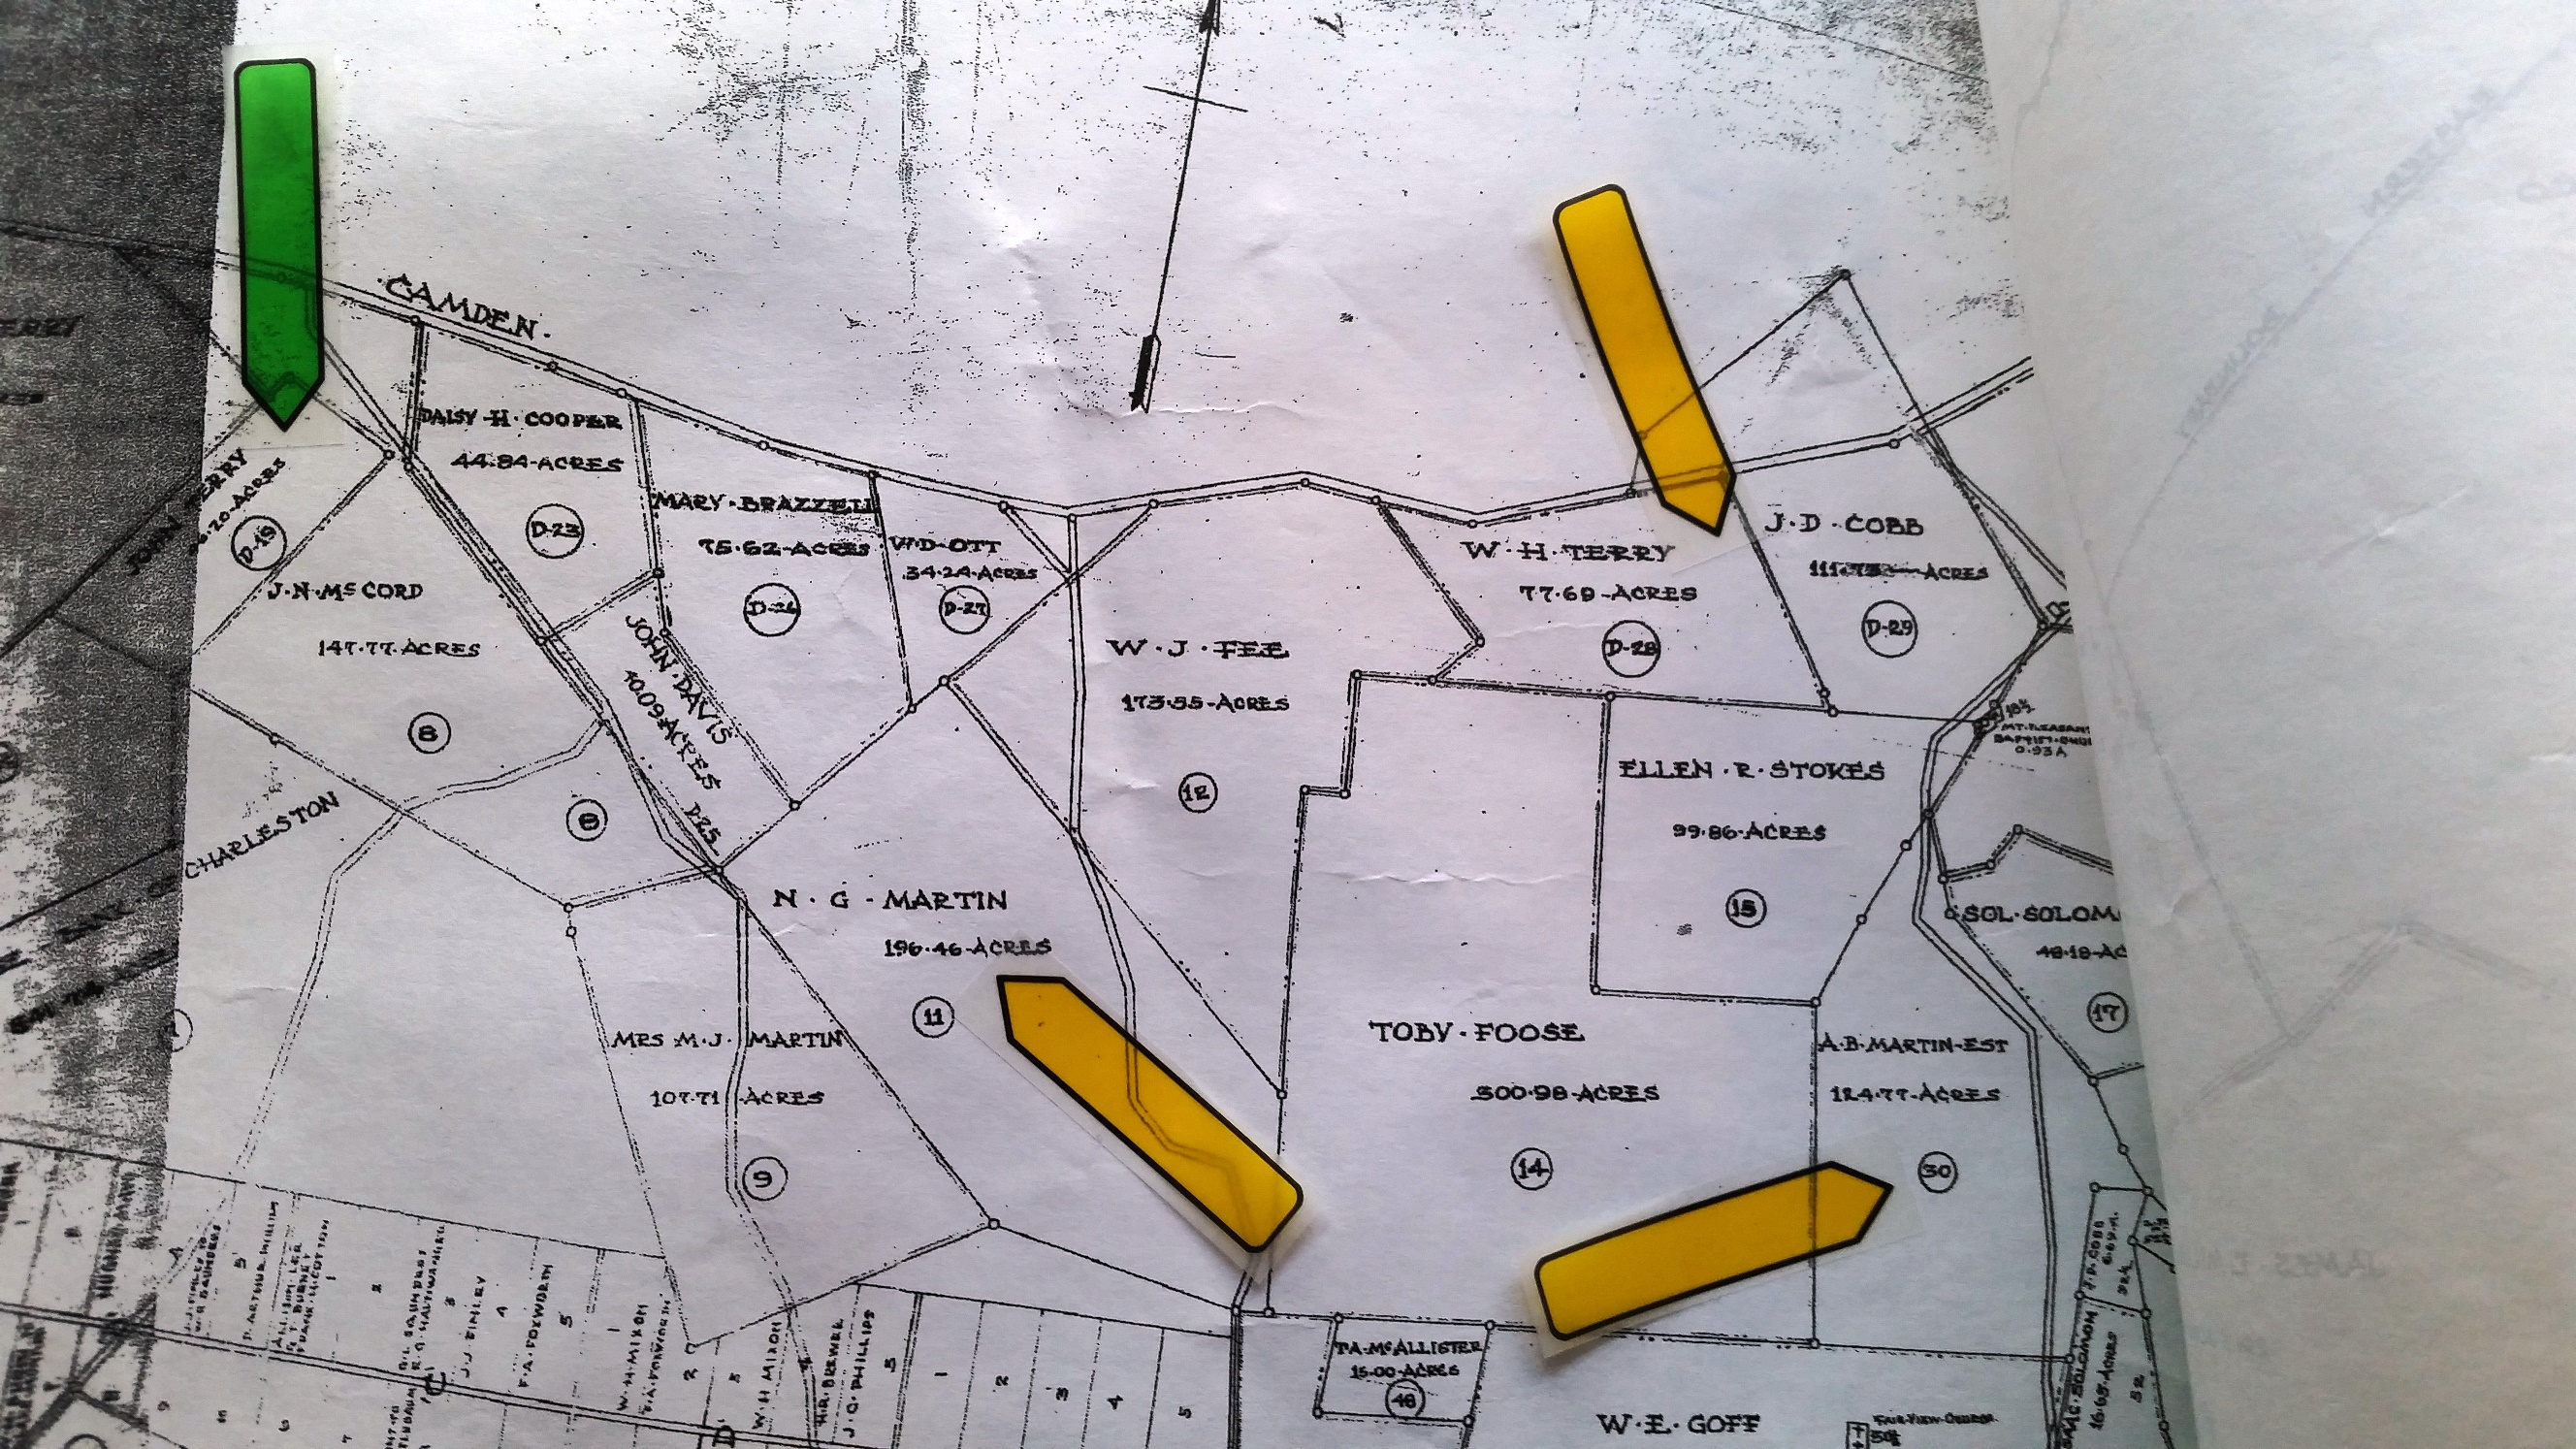 Survey map of a portion of the Fort Jackson Landowners' Map with a green arrow showing John Terry's land and 3 yellow arrows showing the land belonging to Narcissus Martin, Willie Terry, and Adolphus Martin. They are all close together.